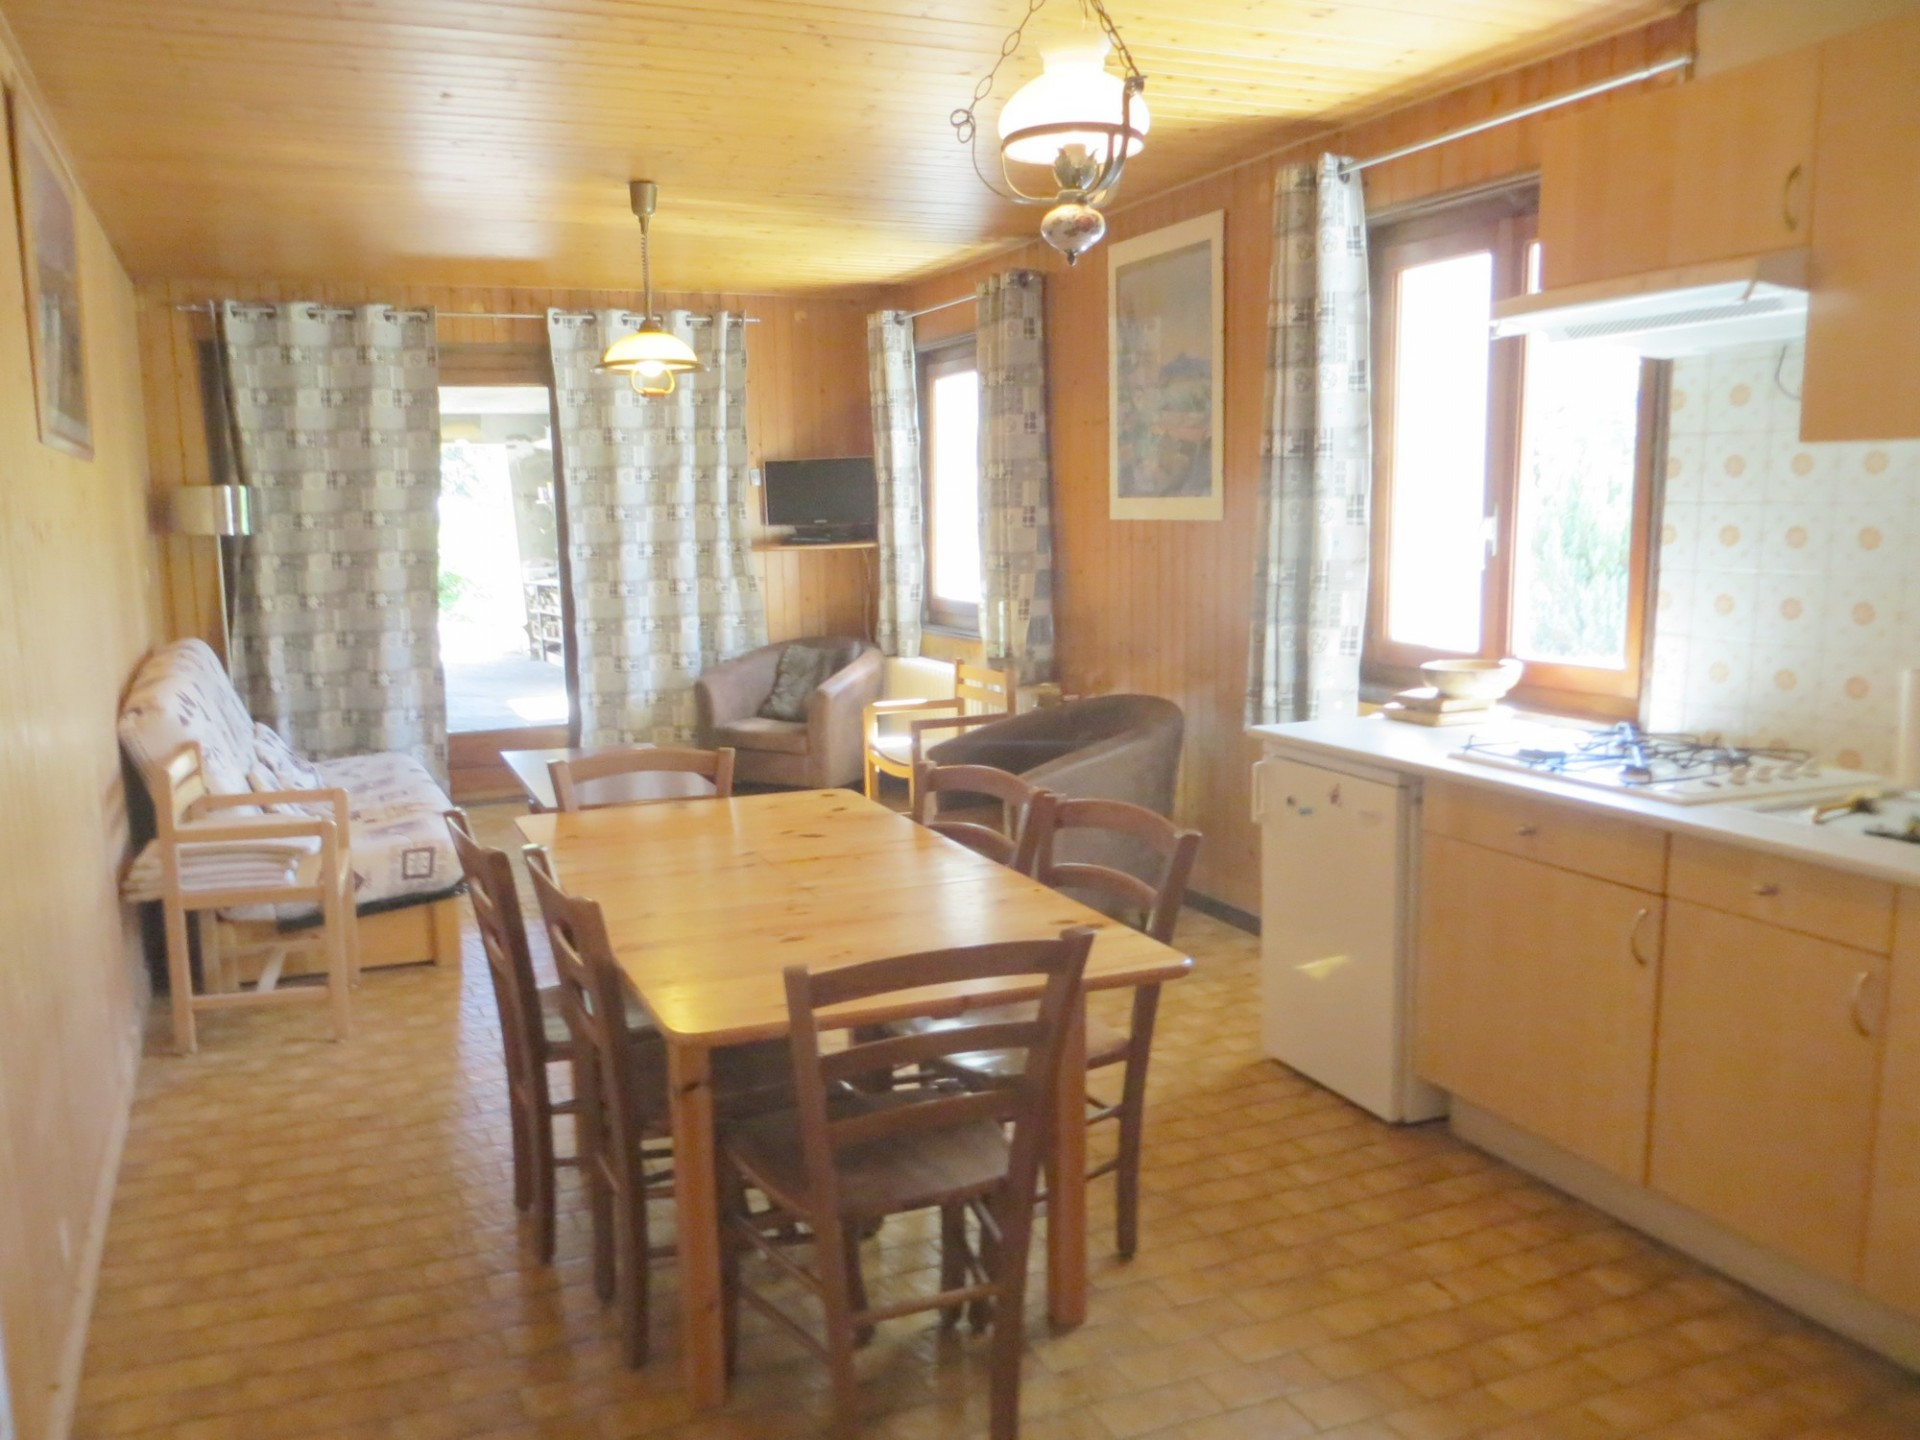 Rent Apartment Les Gets Ancolie Apartment in chalet 6 persons 3